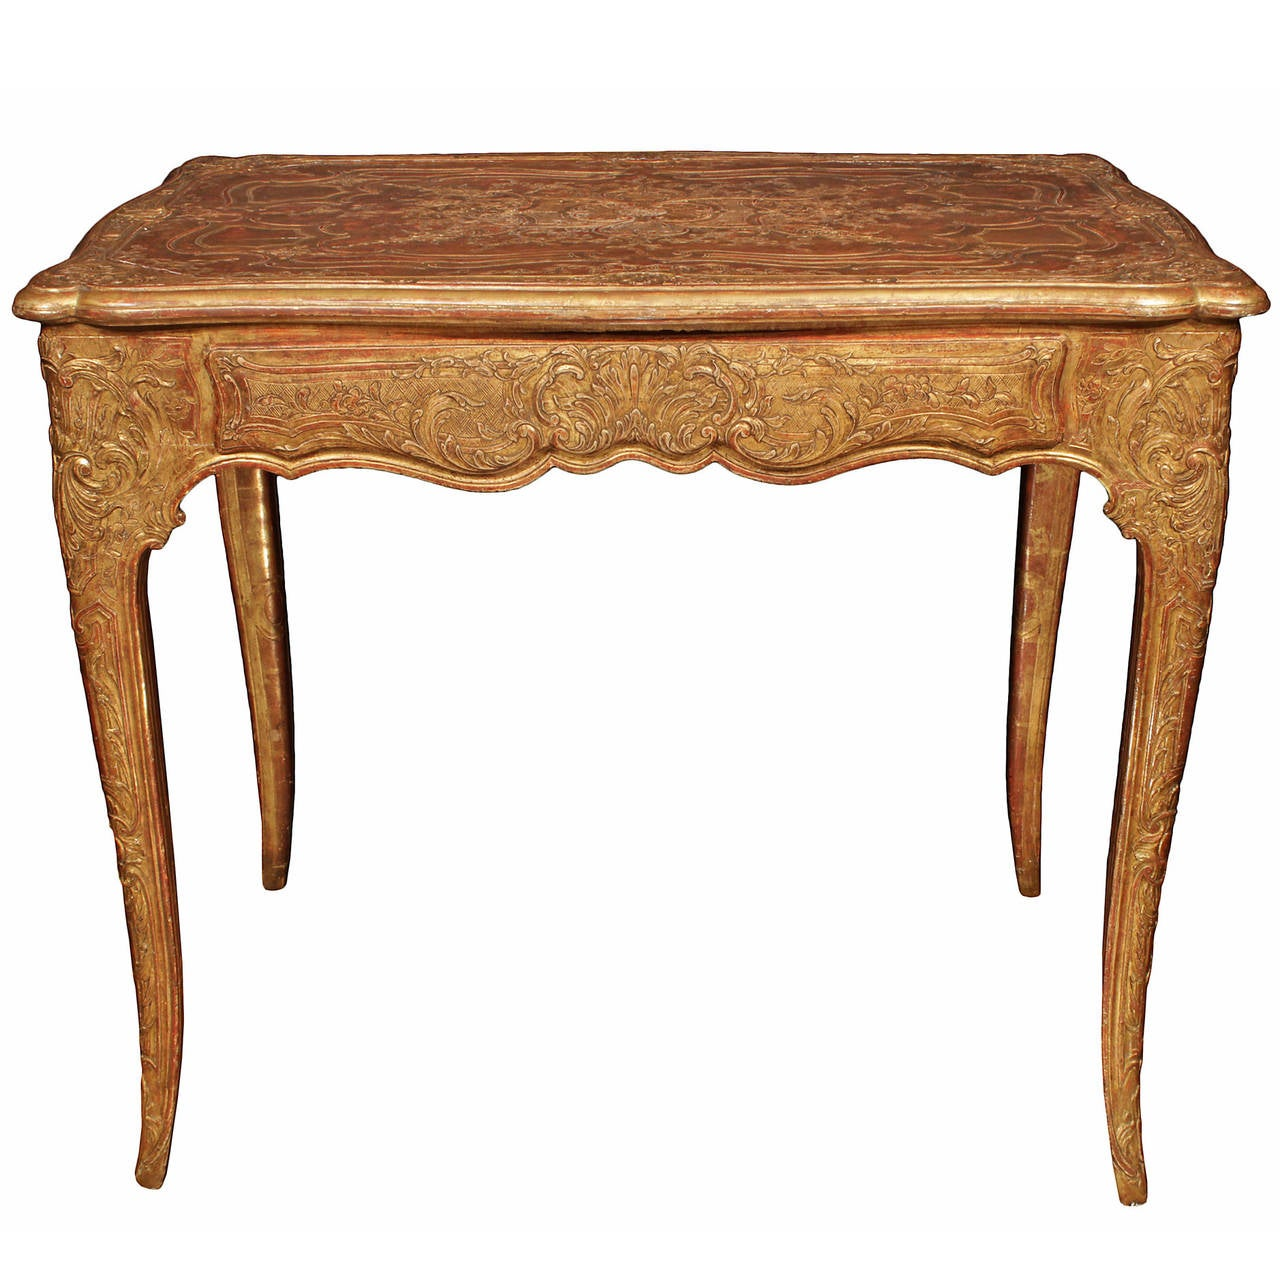 French Late 18th Century Louis XV Period Giltwood Side Table